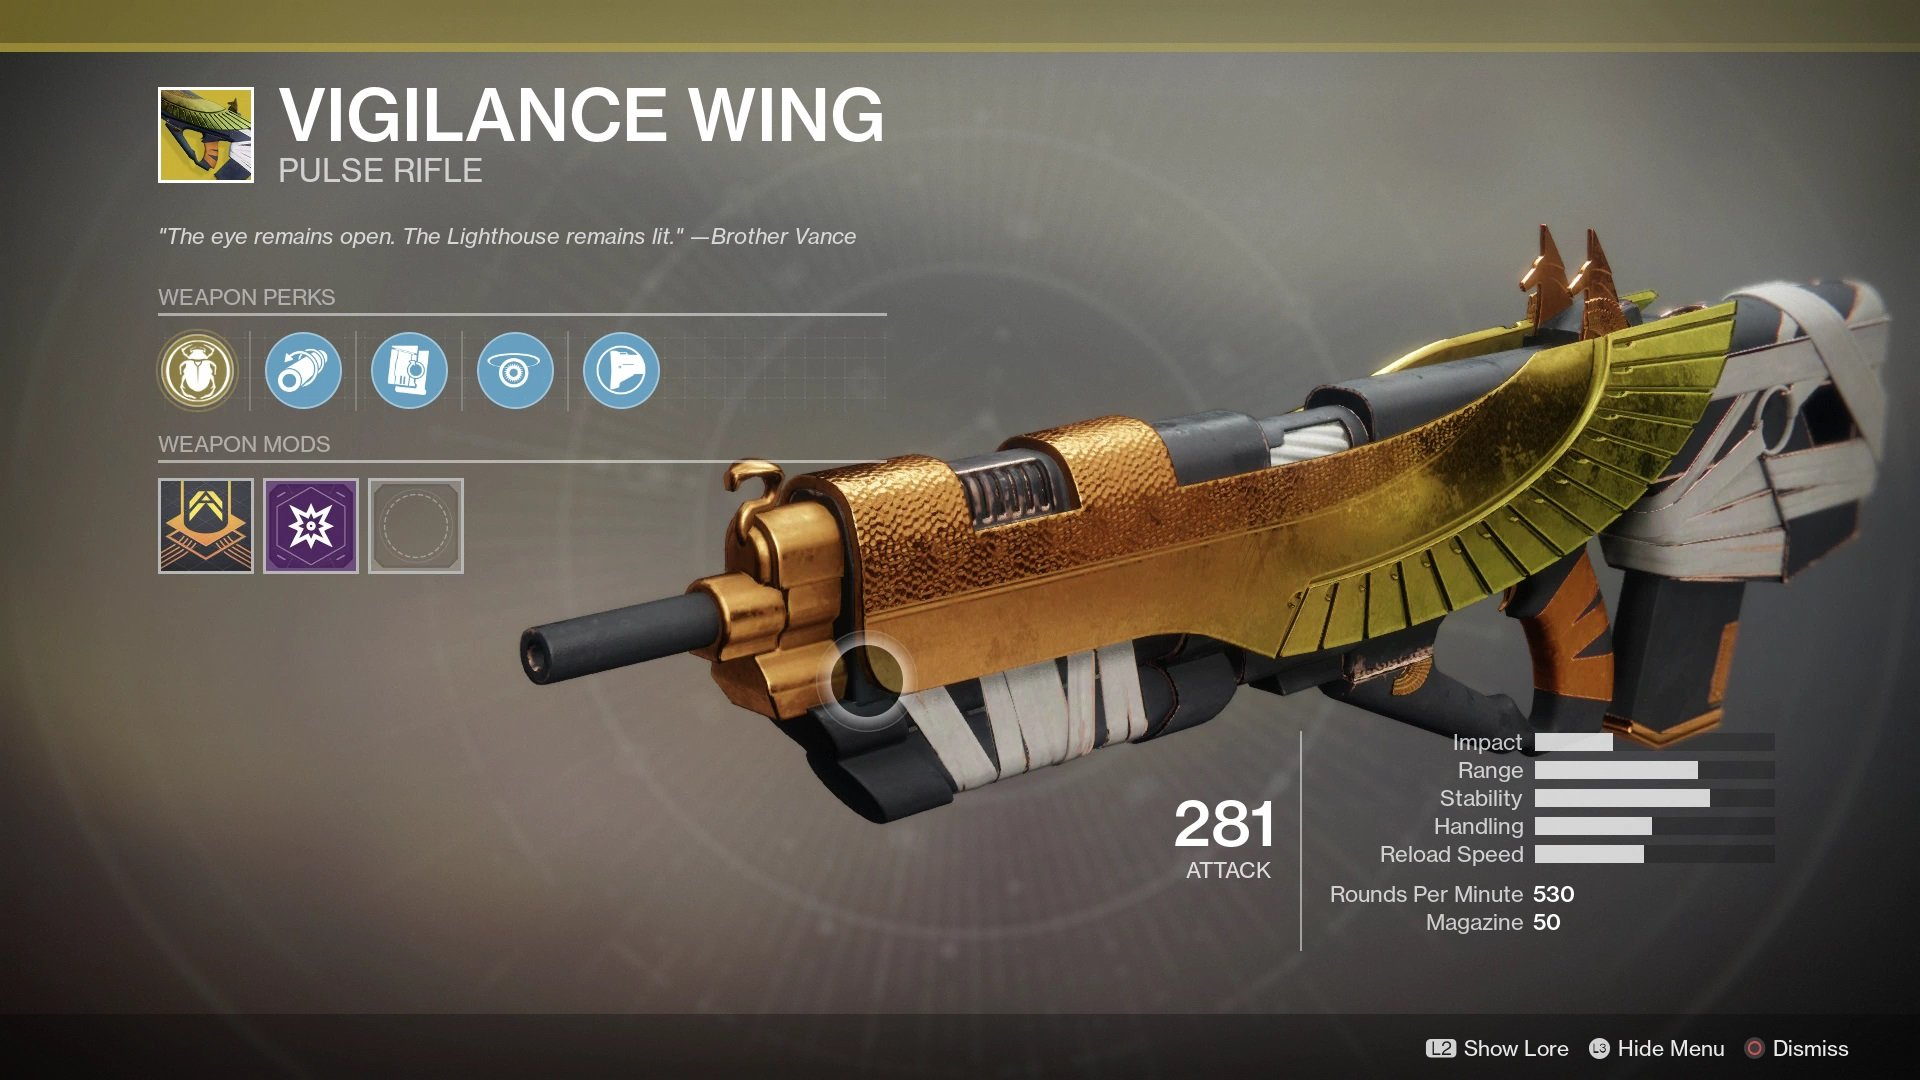 During the week of January 18, you can purchase a Vigilance Wing Exotic pulse rifle from Xur for 29 Legendary Shards.